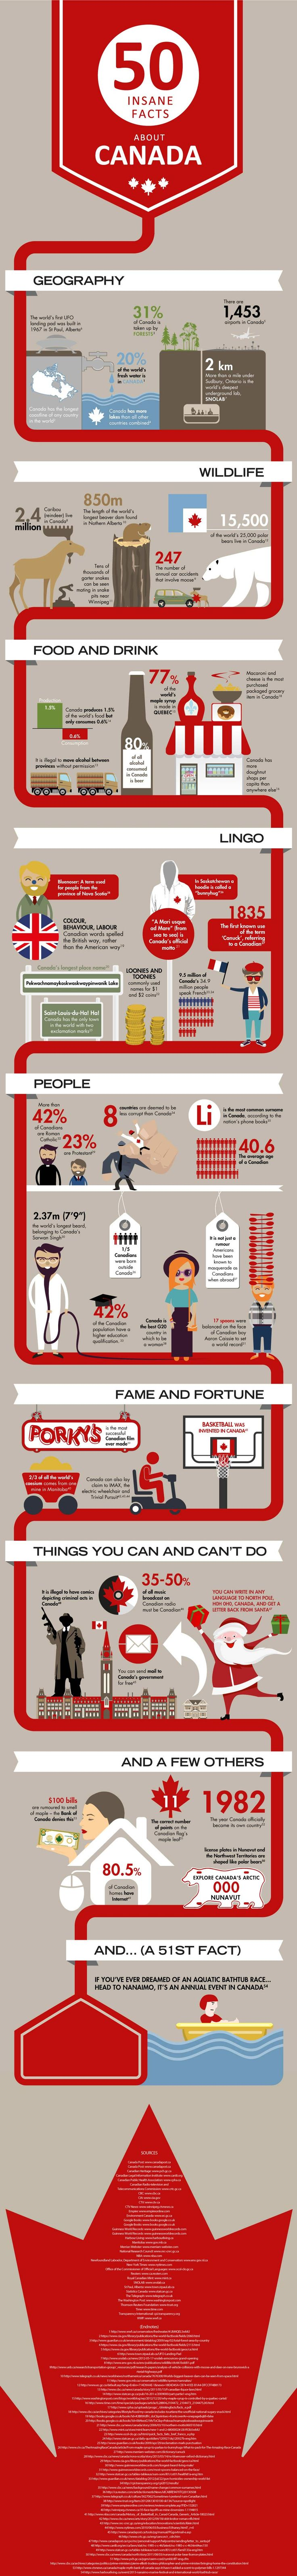 #INFOgraphic > Canada Confidential: > http://infographicsmania.com/canada-confidential/?utm_source=Pinterest&utm_medium=INFOGRAPHICSMANIA&utm_campaign=SNAP